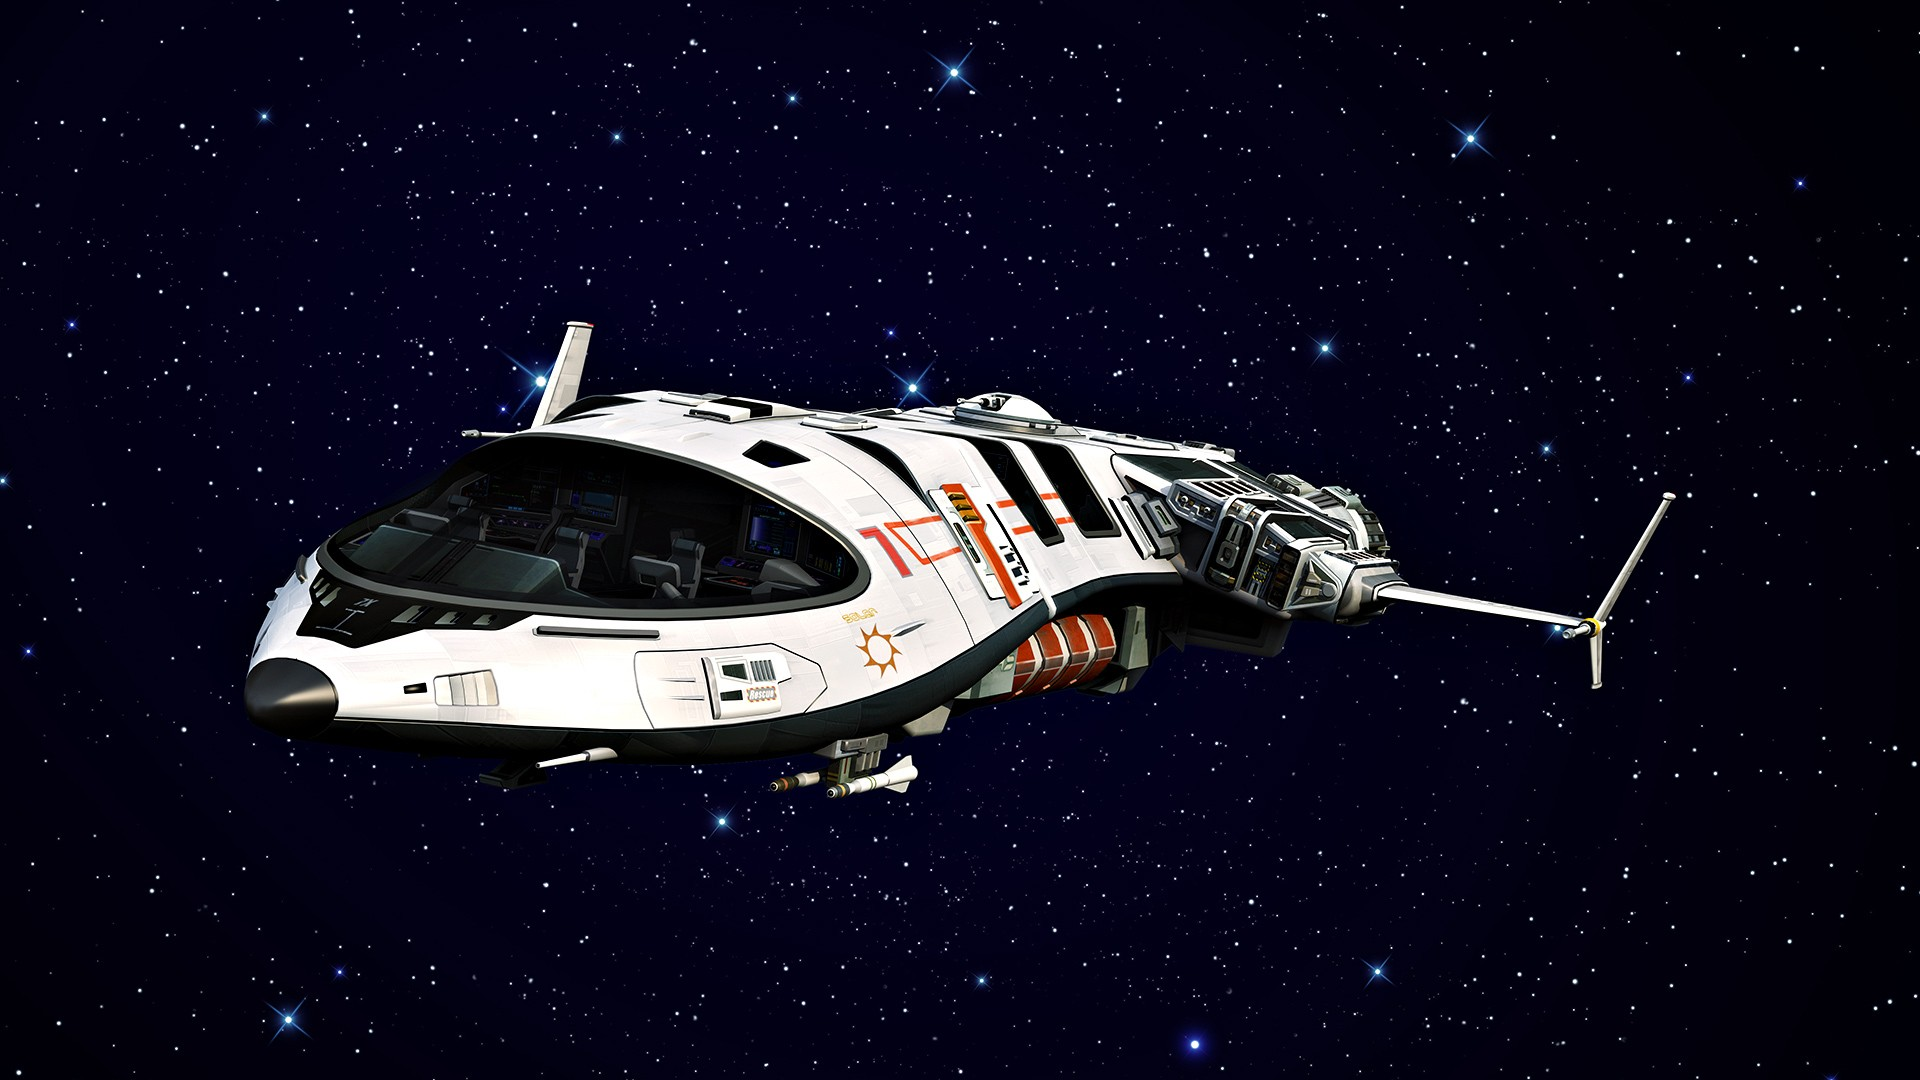 Spaceships In Space wallpaper 226635 1920x1080